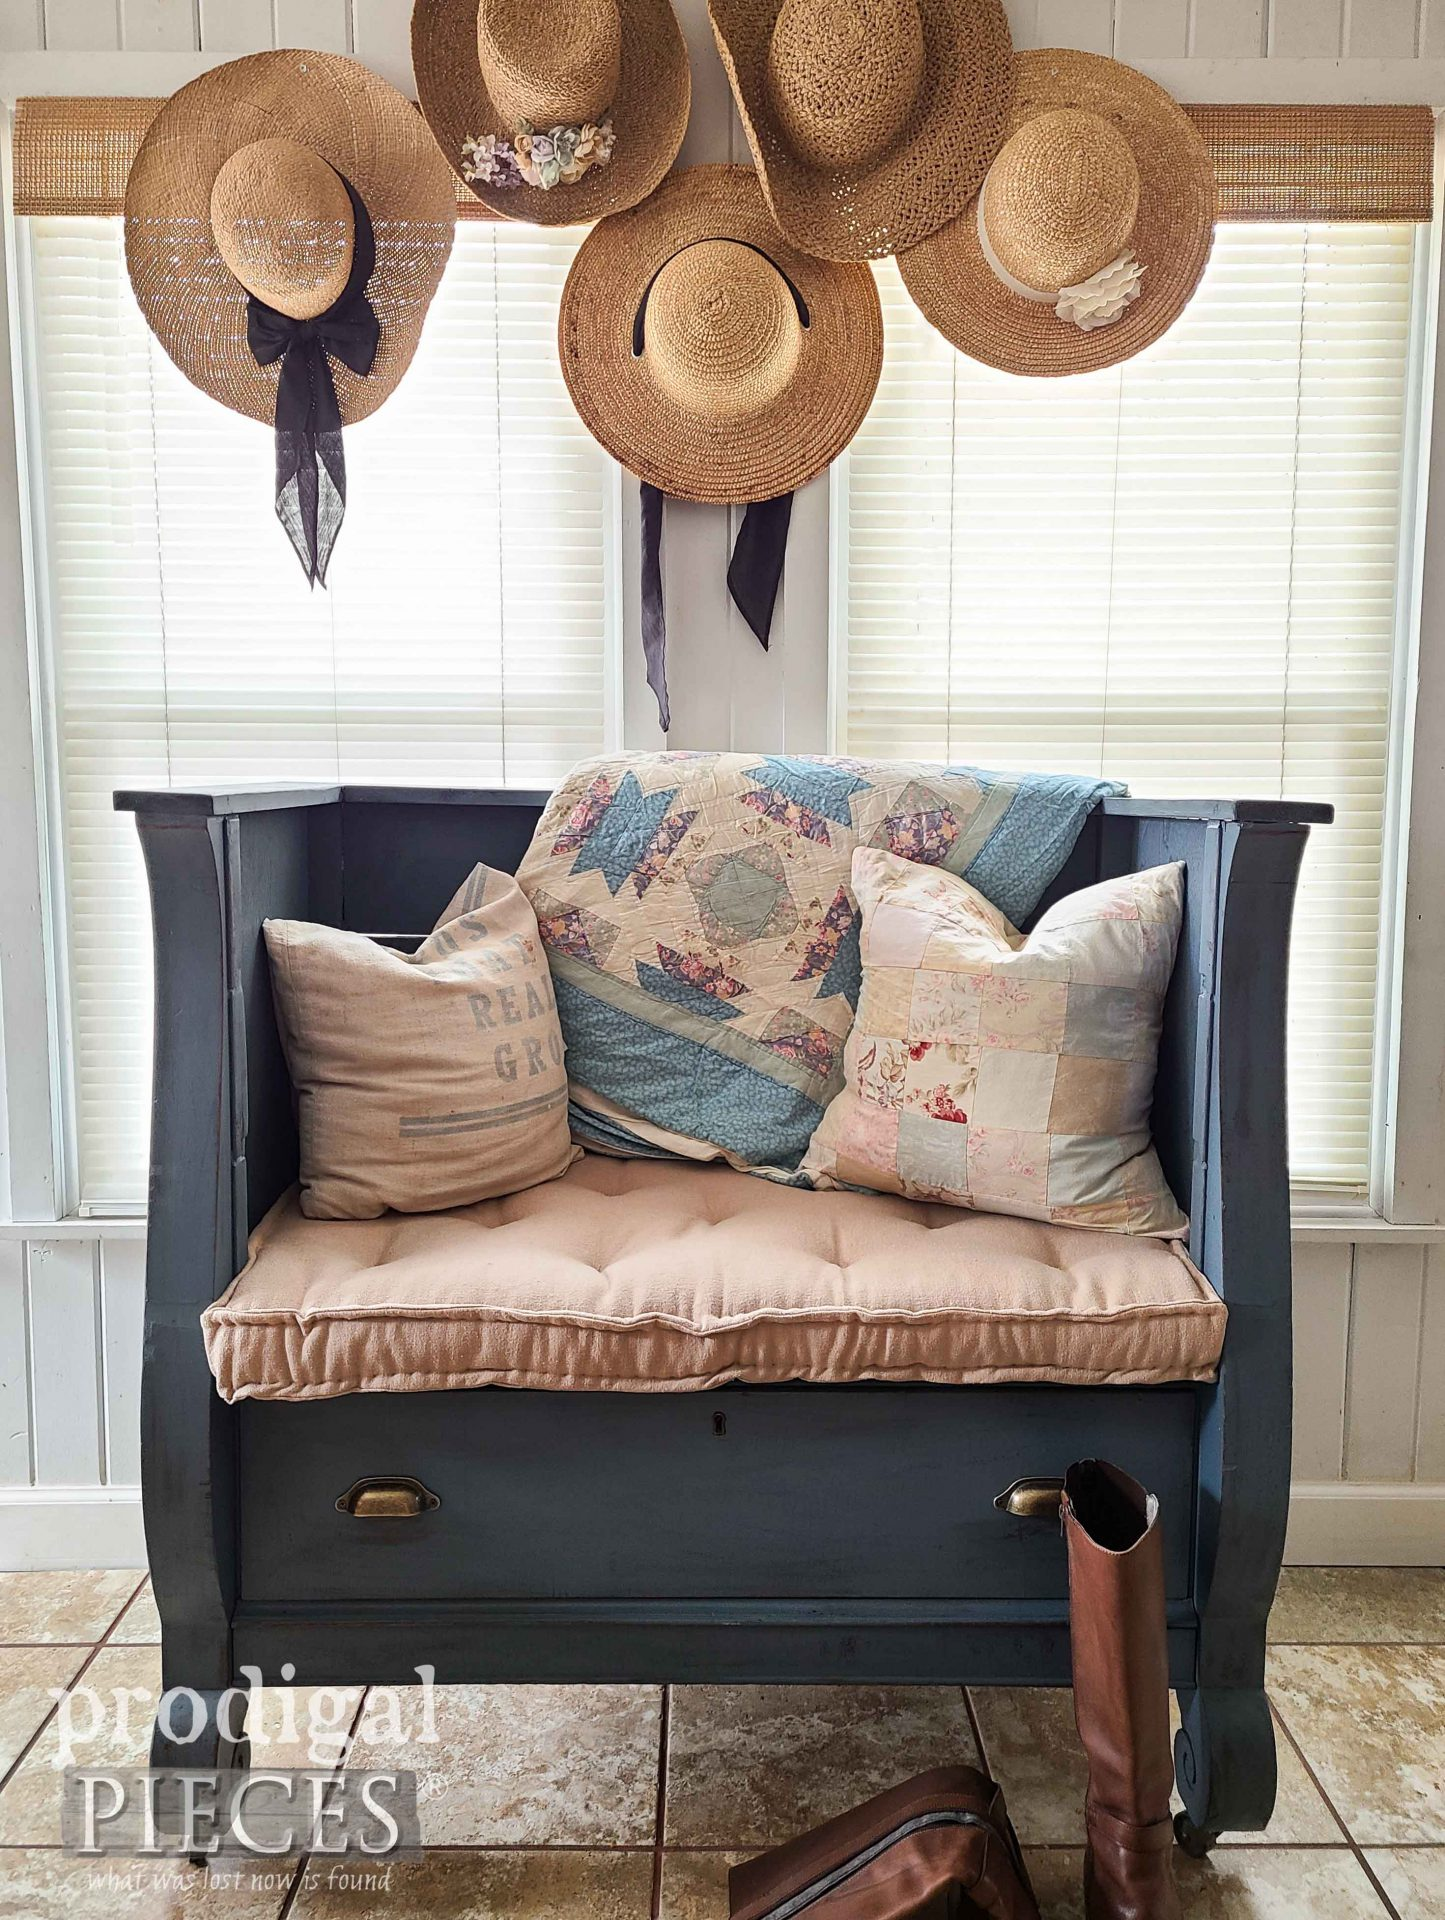 Farmhouse Style Entry Bench with Tufted French Mattress by Larissa of Prodigal Pieces | prodigalpieces.com #prodigalpieces #farmhouse #furniture #diy #home